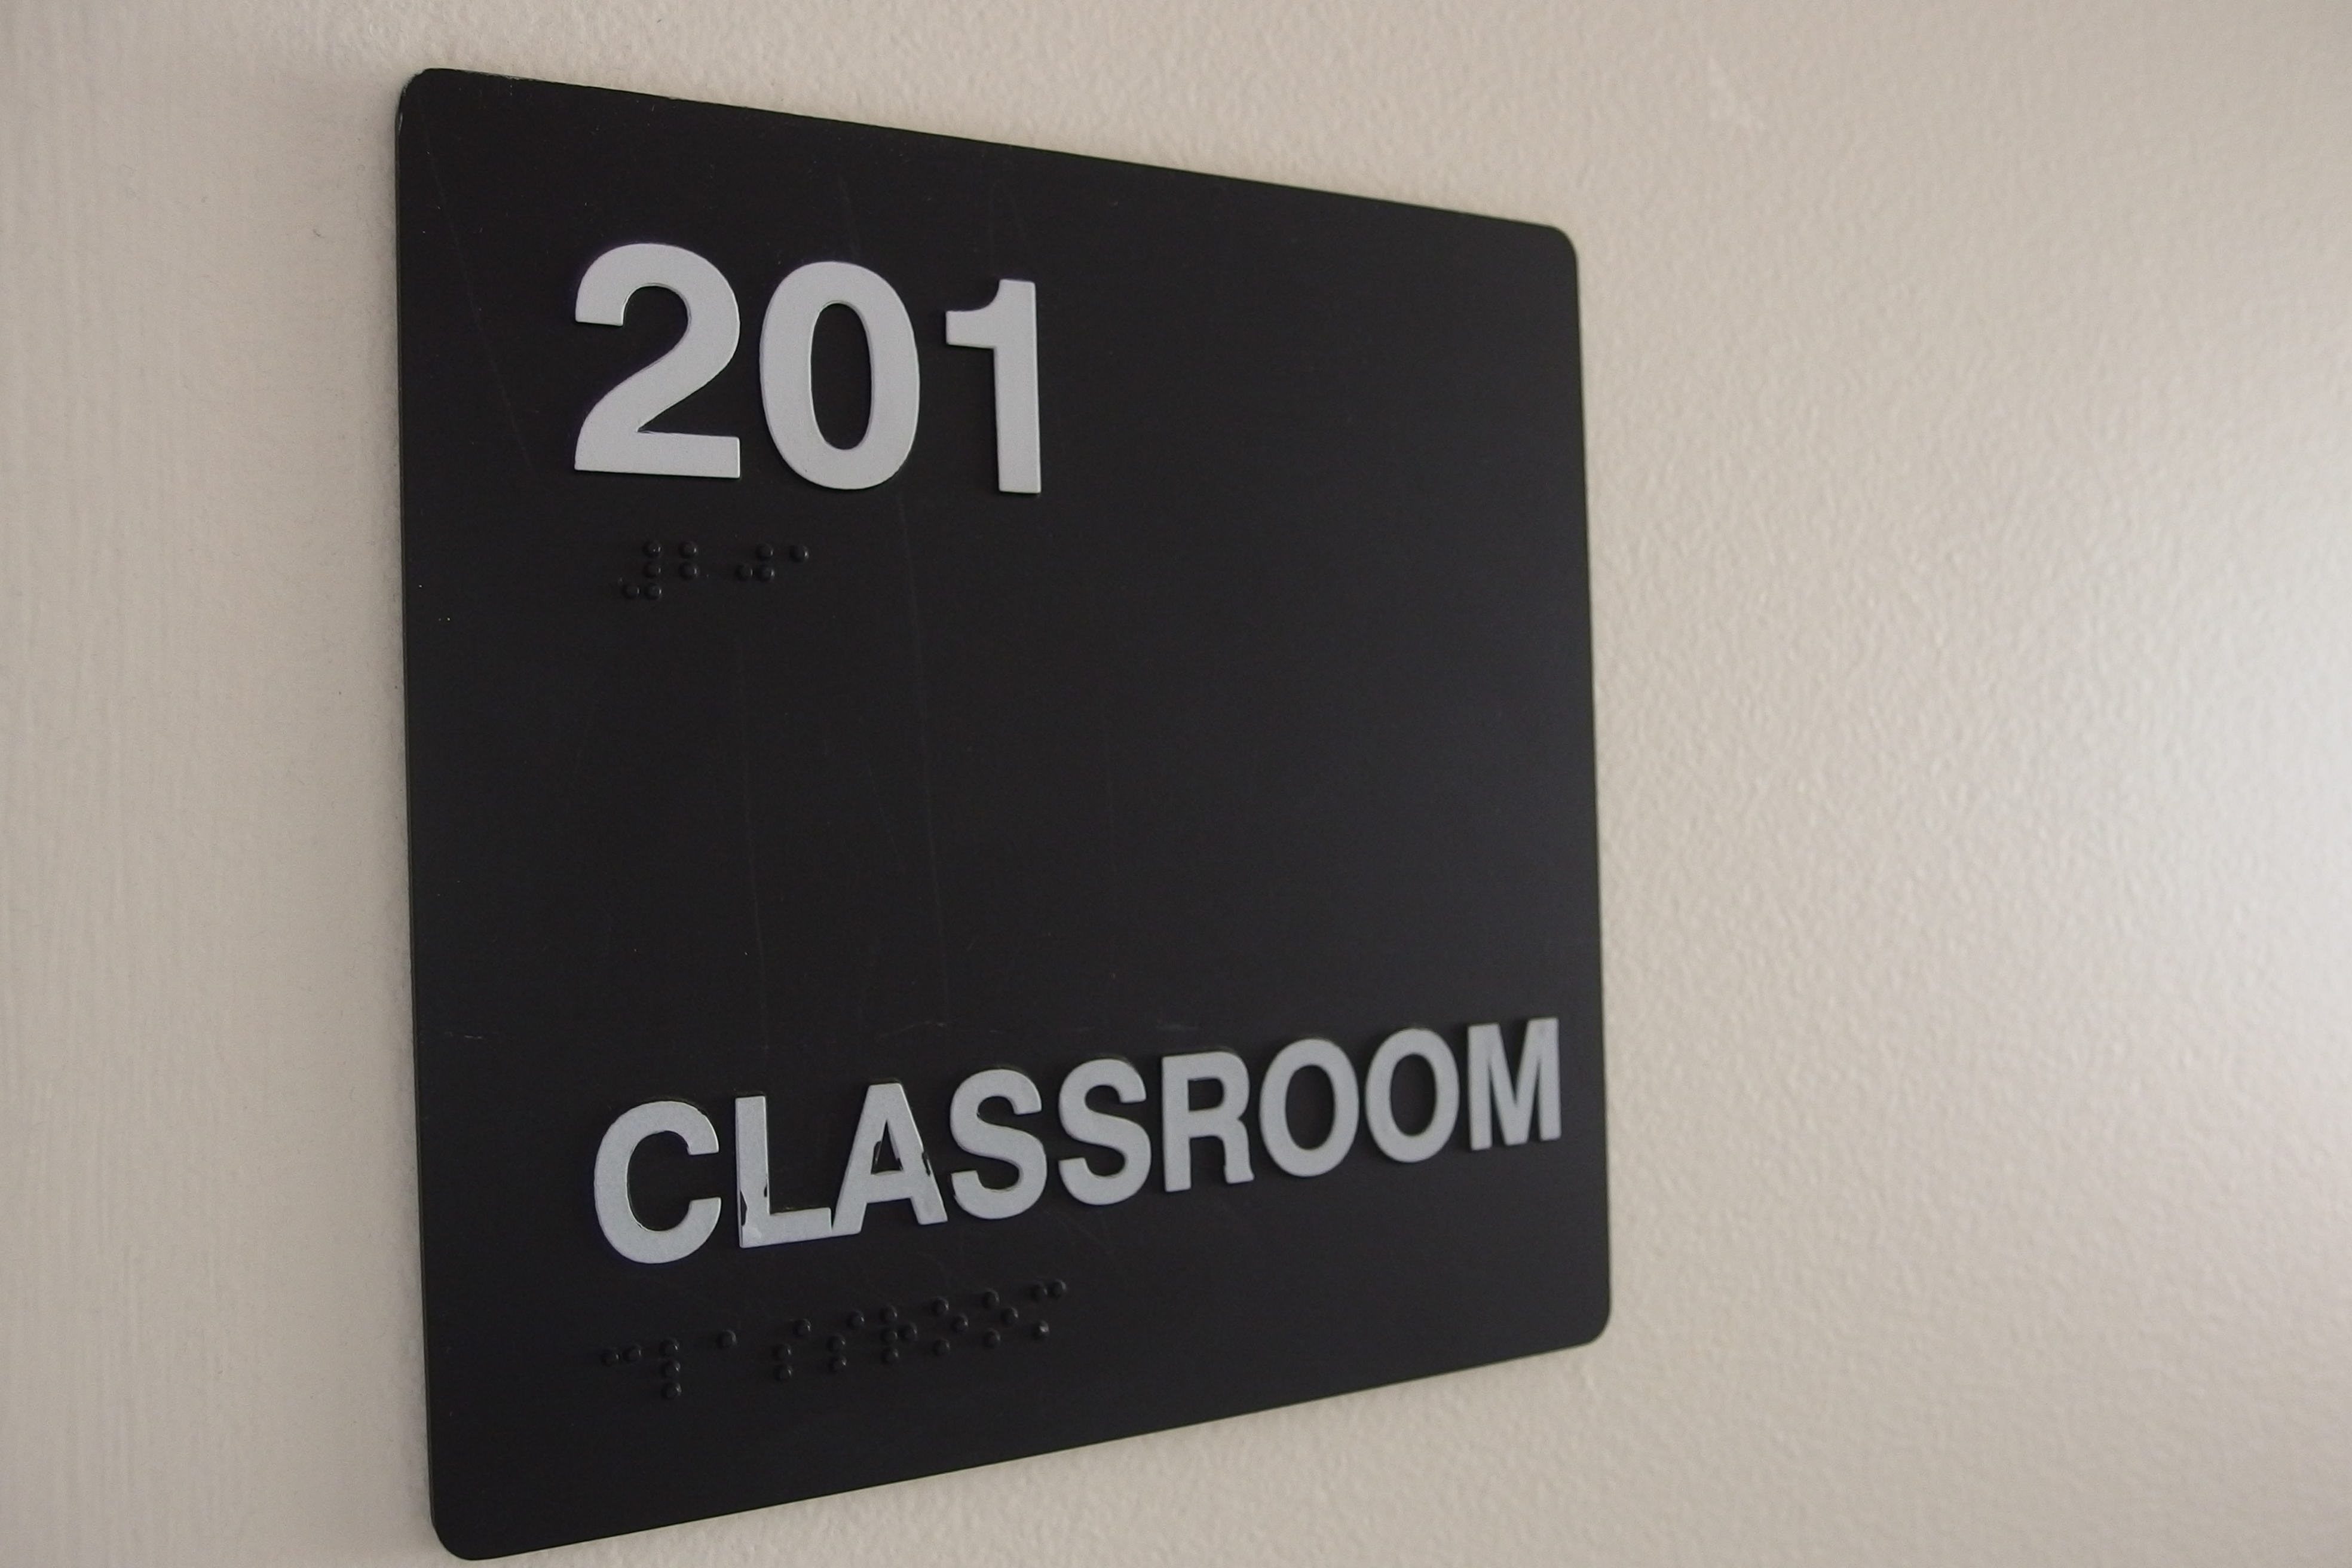 A picture of the sign for room #201.